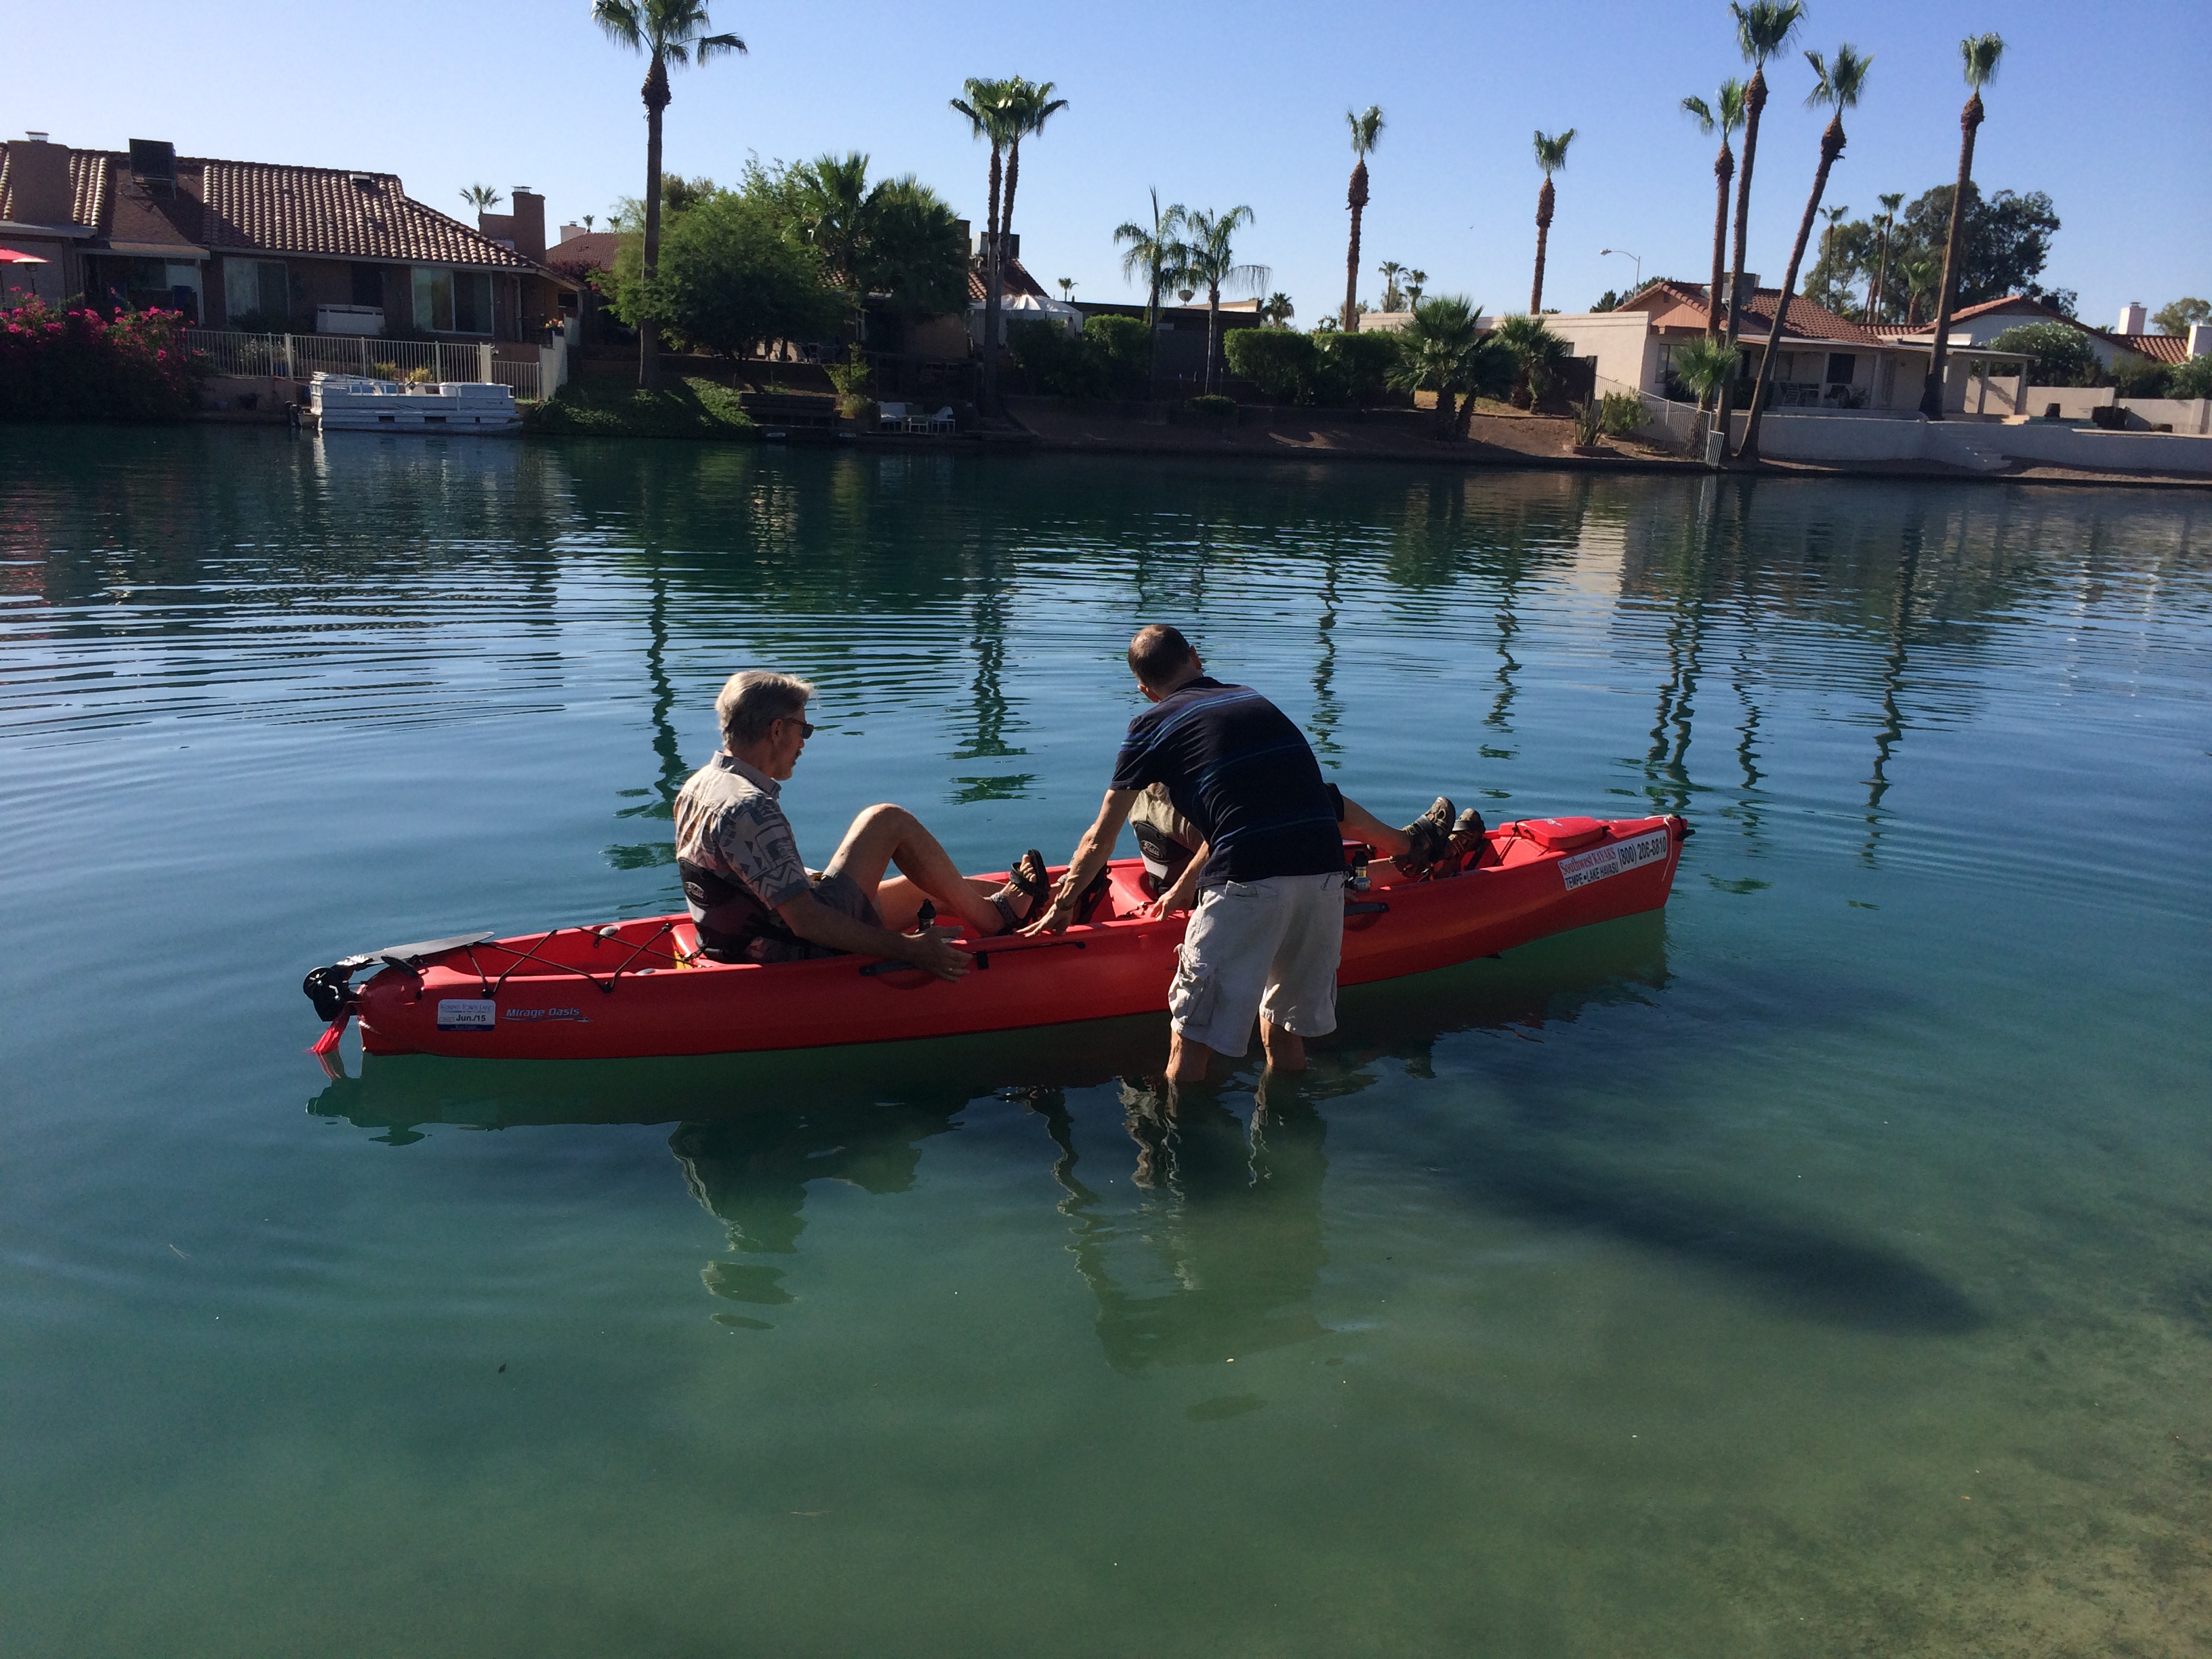 Kayak demo day in Tempe